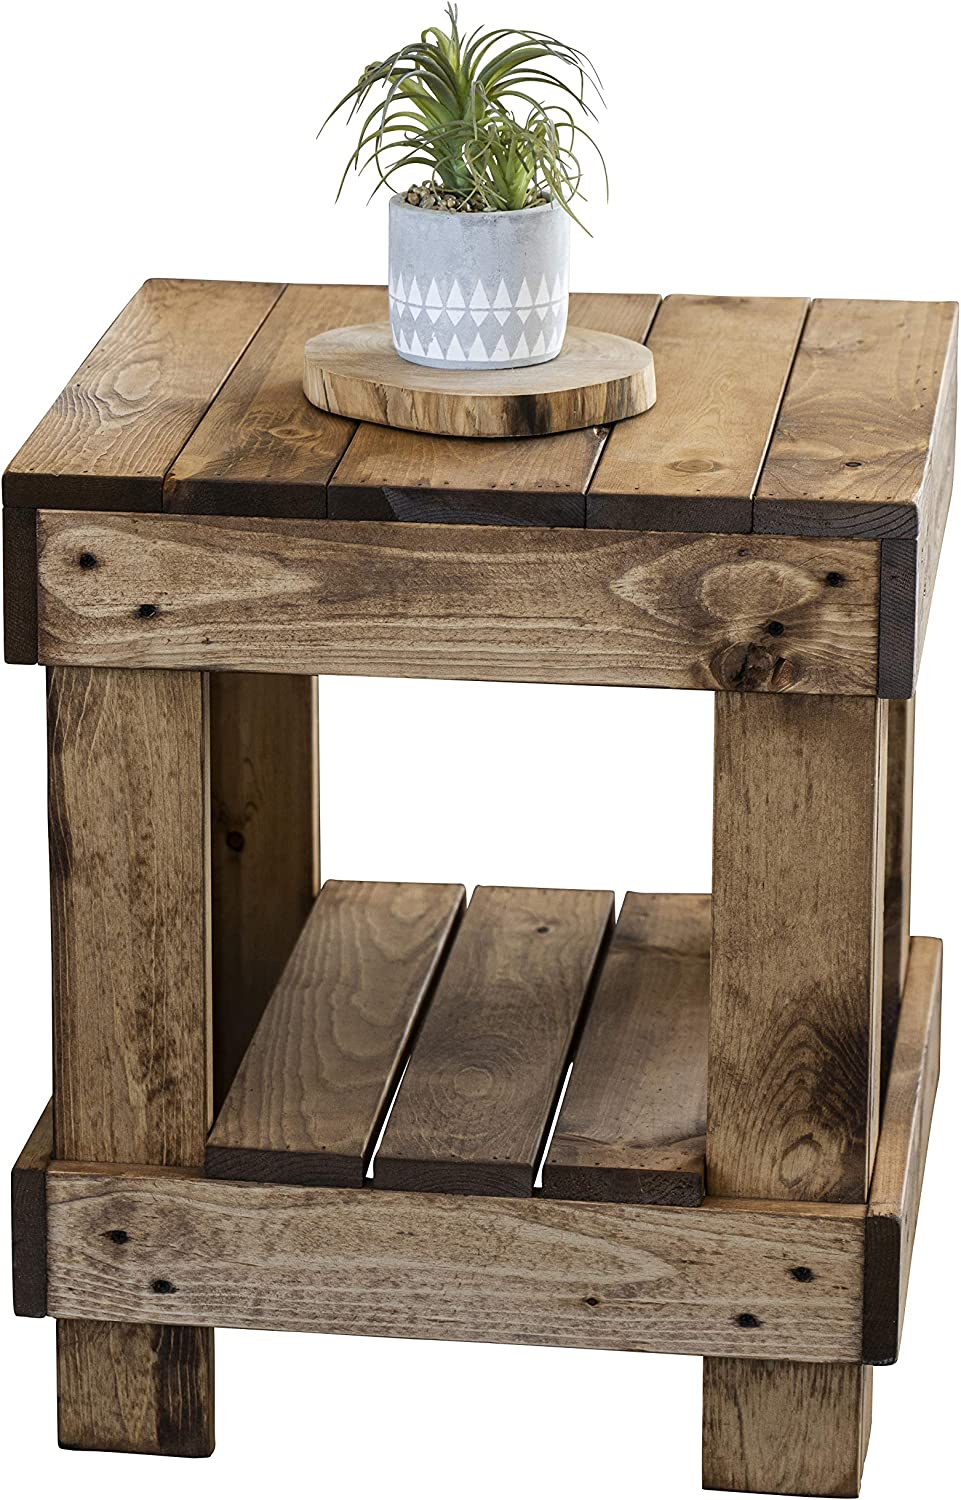 Landmark Pine Natural Solid Wood Farmhouse Living Room Coffee or End Table (End Table, Walnut)